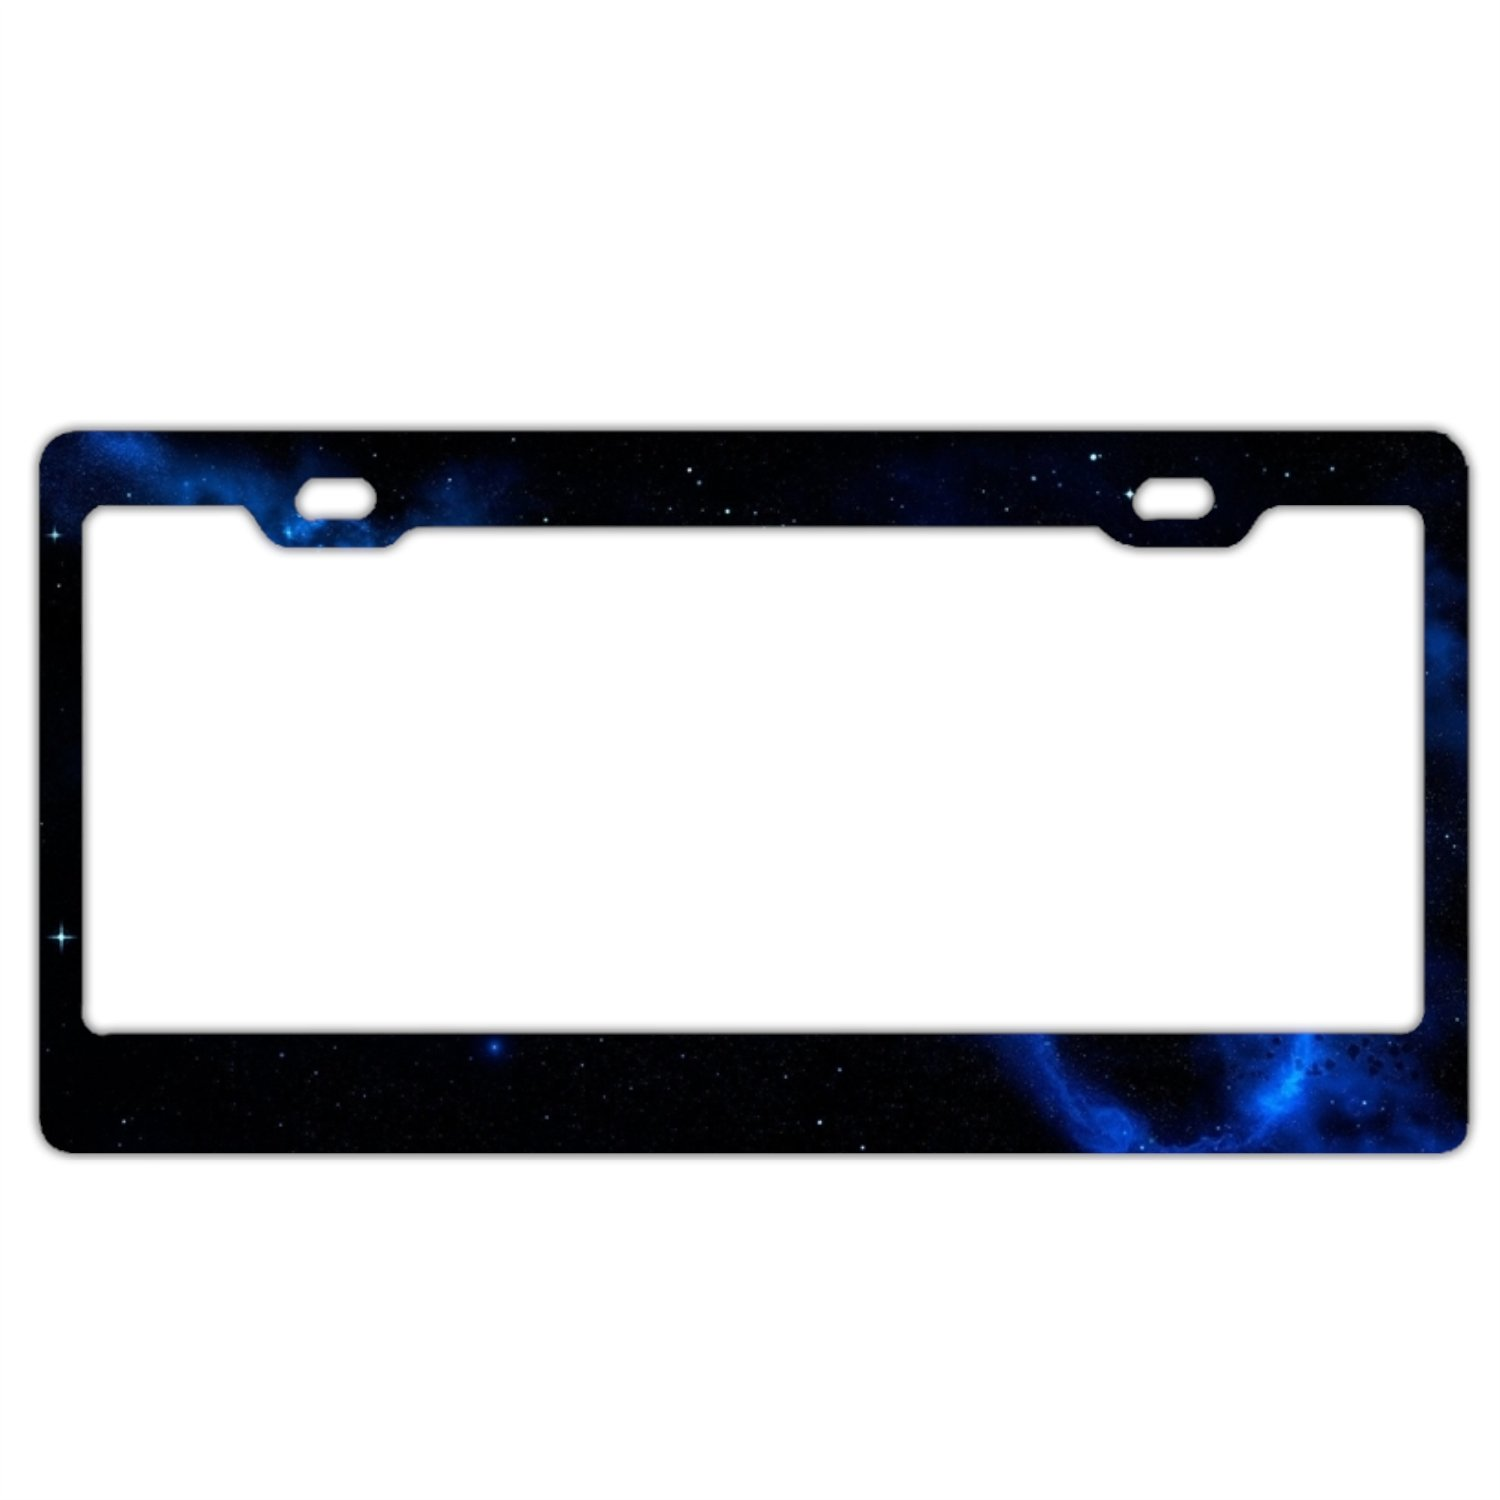 beach sand license plate frames stainless steel car licence plate